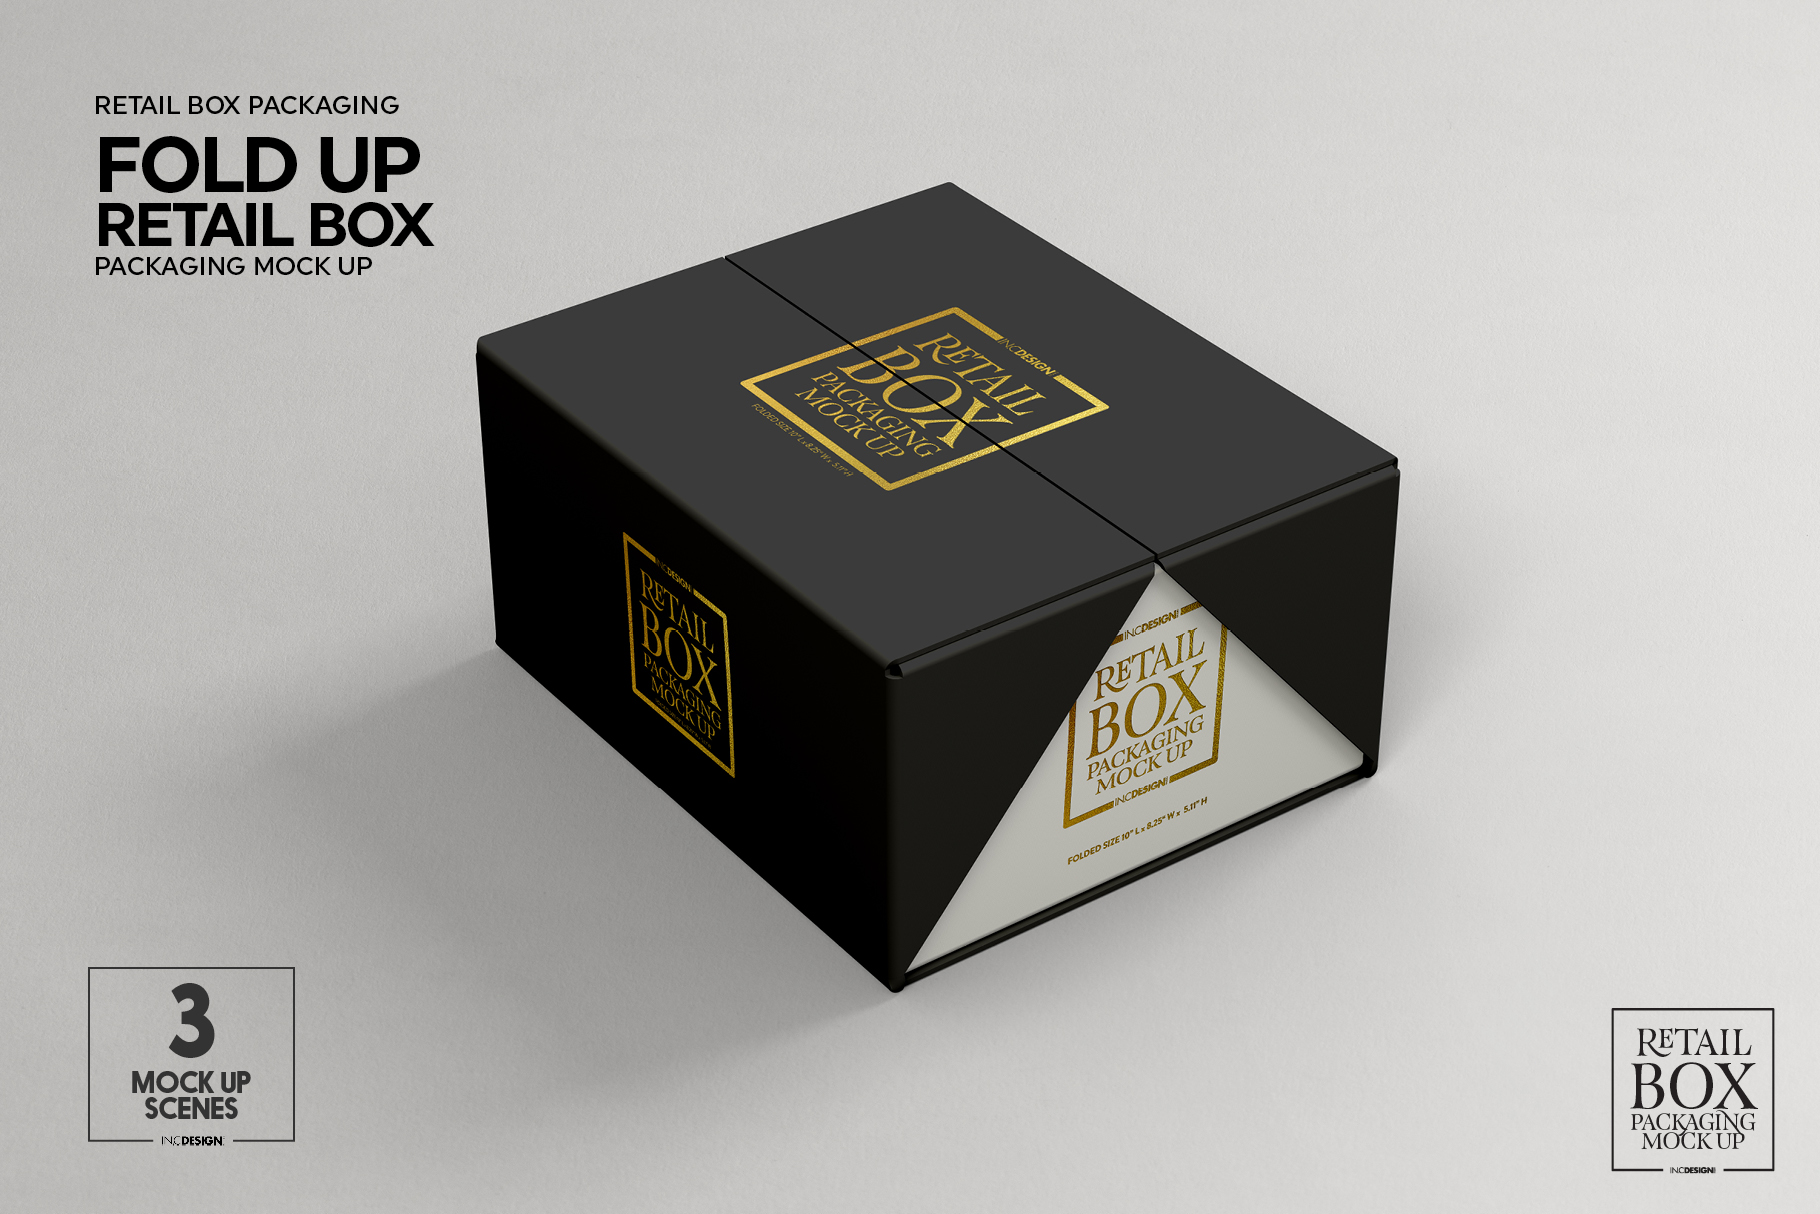 Fold Up Retail Box Packaging Mockup example image 2